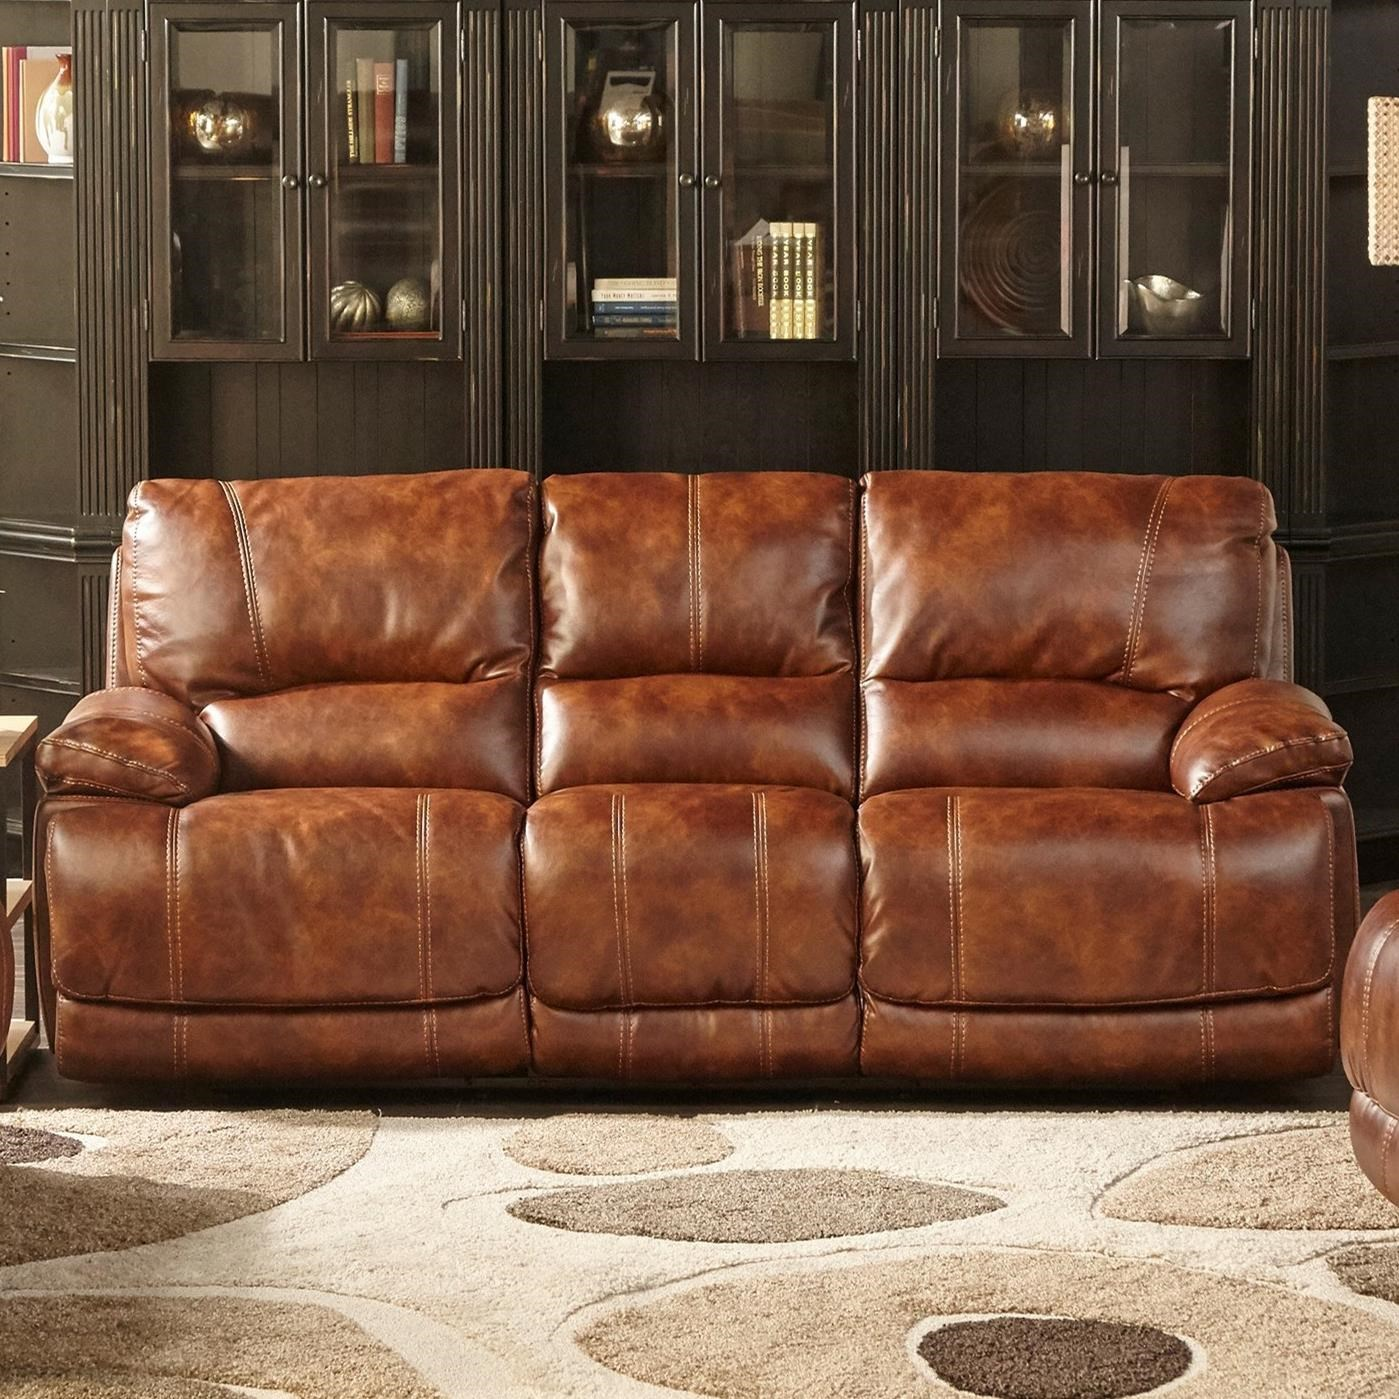 Cheers Sofa 5185M Power Sofa - Item Number: 5185M-L3-2E-PHR-30767